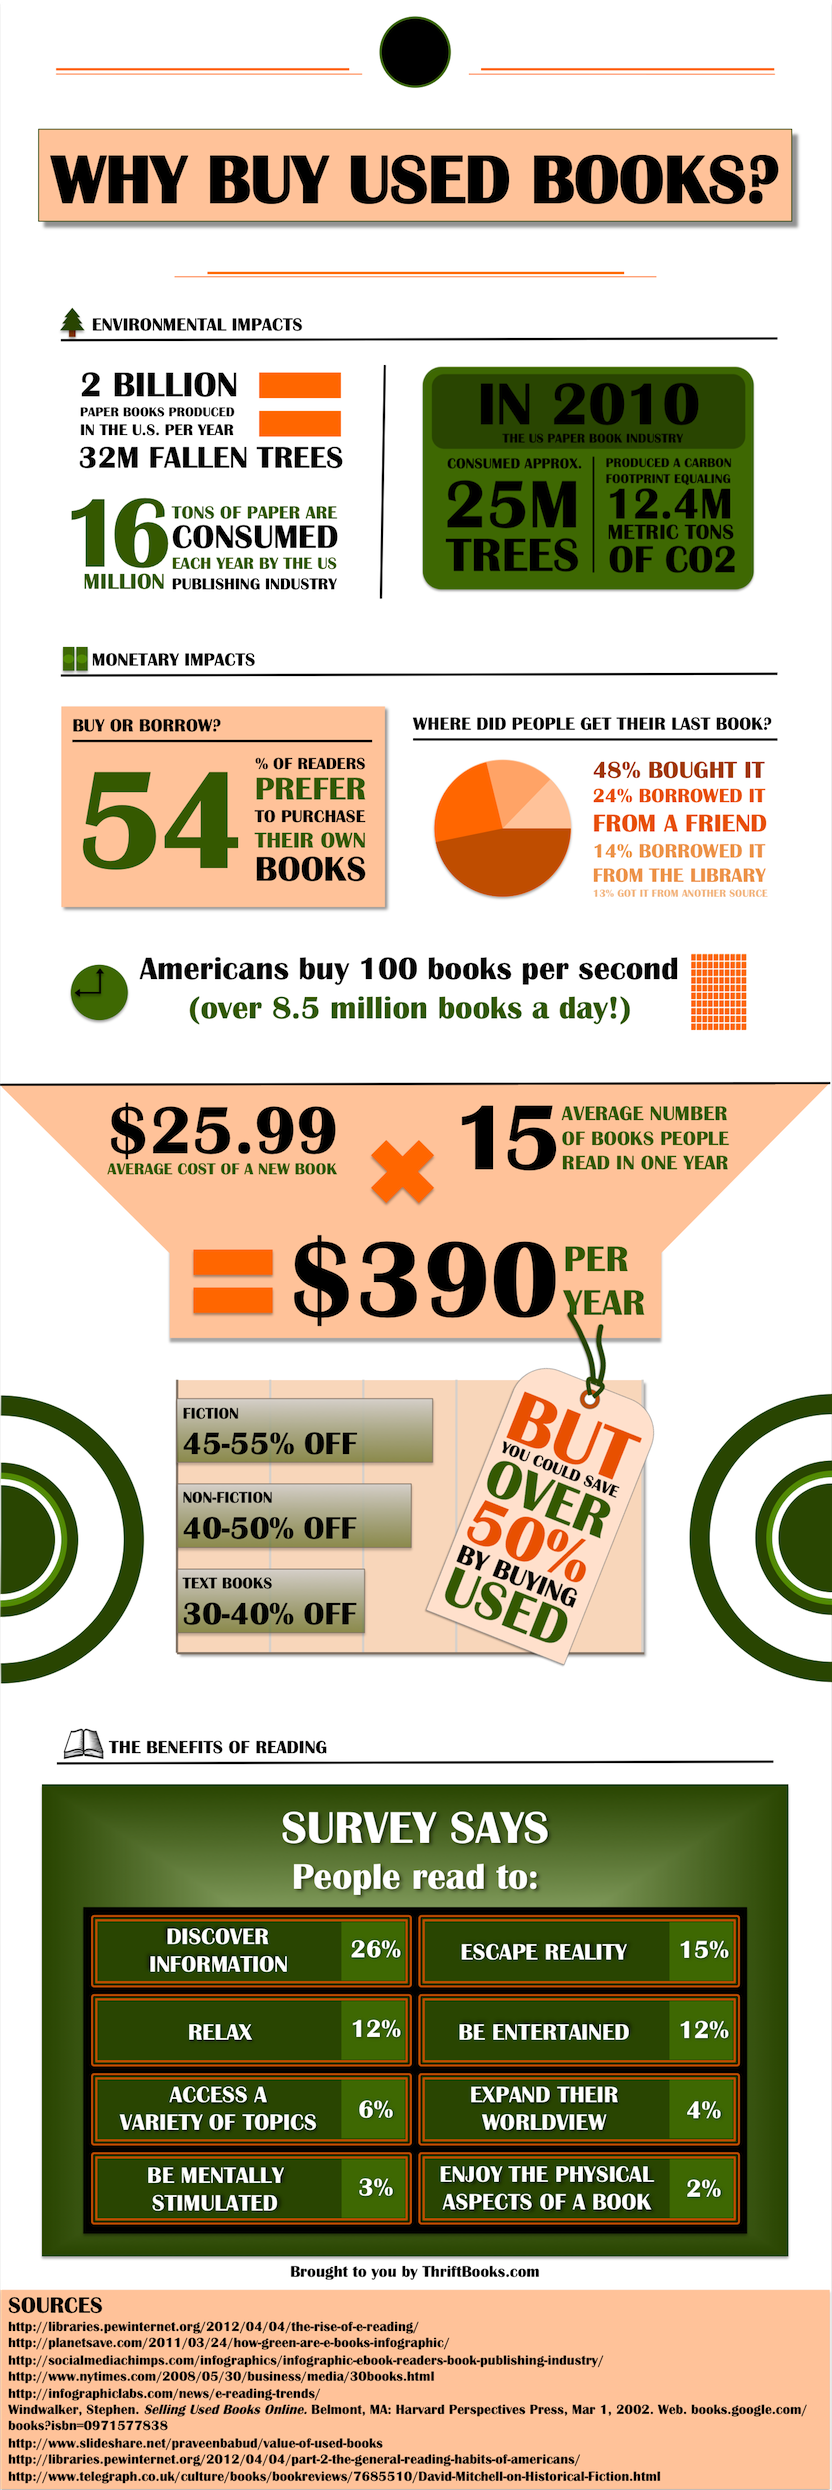 Used books infographic